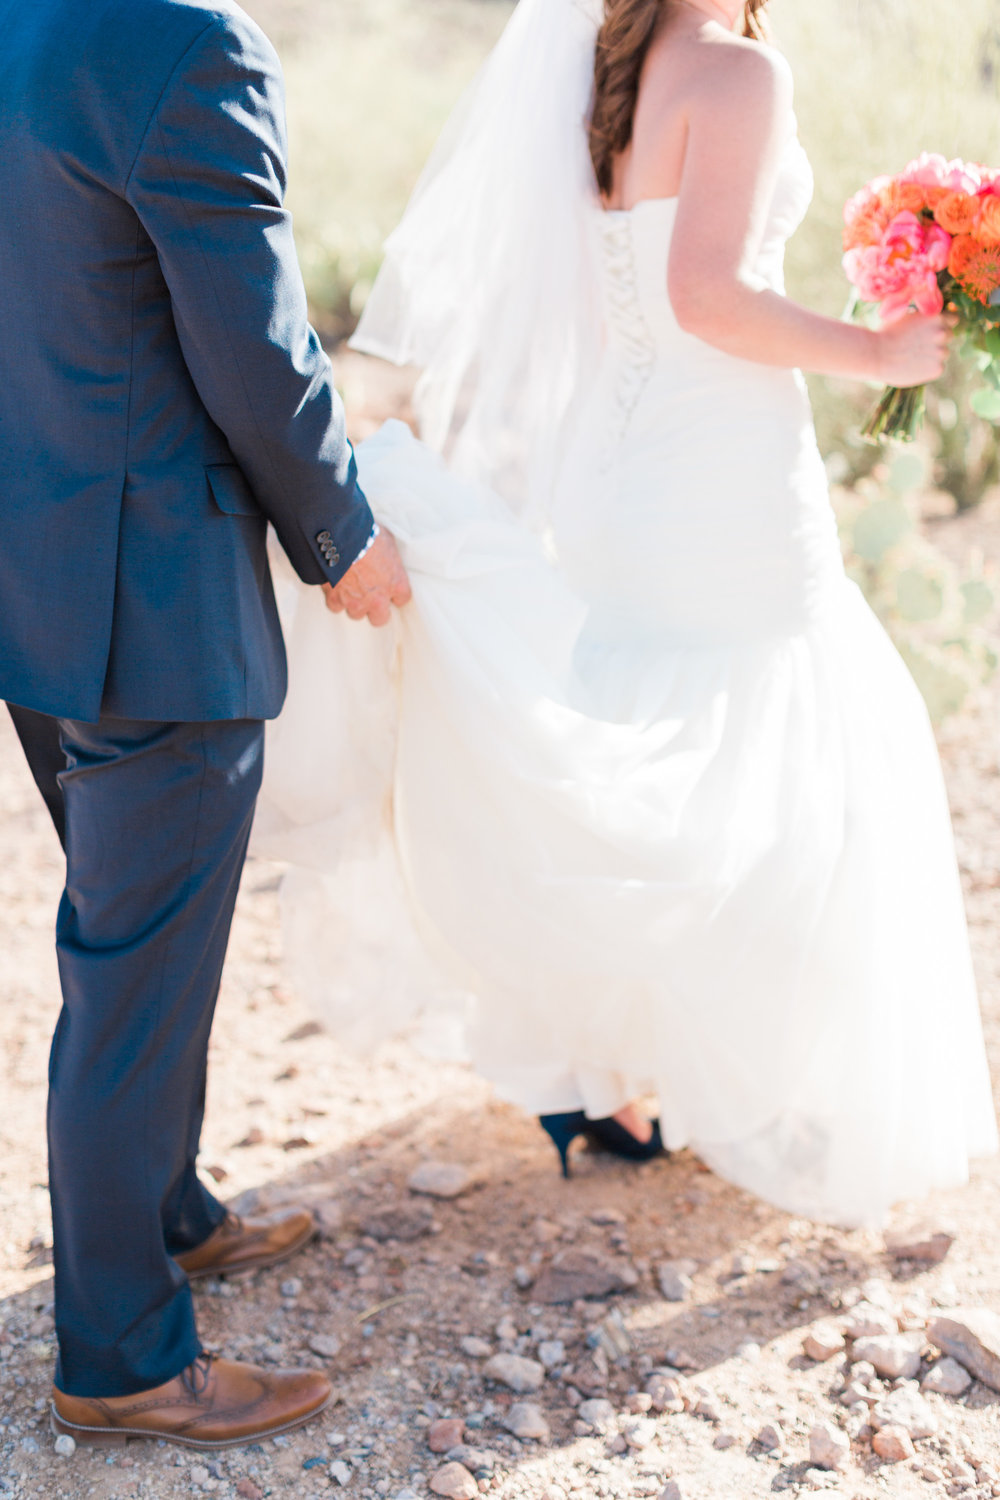 Groom carrying his brides dress as she treks through the rocky Tucson desert in heels.